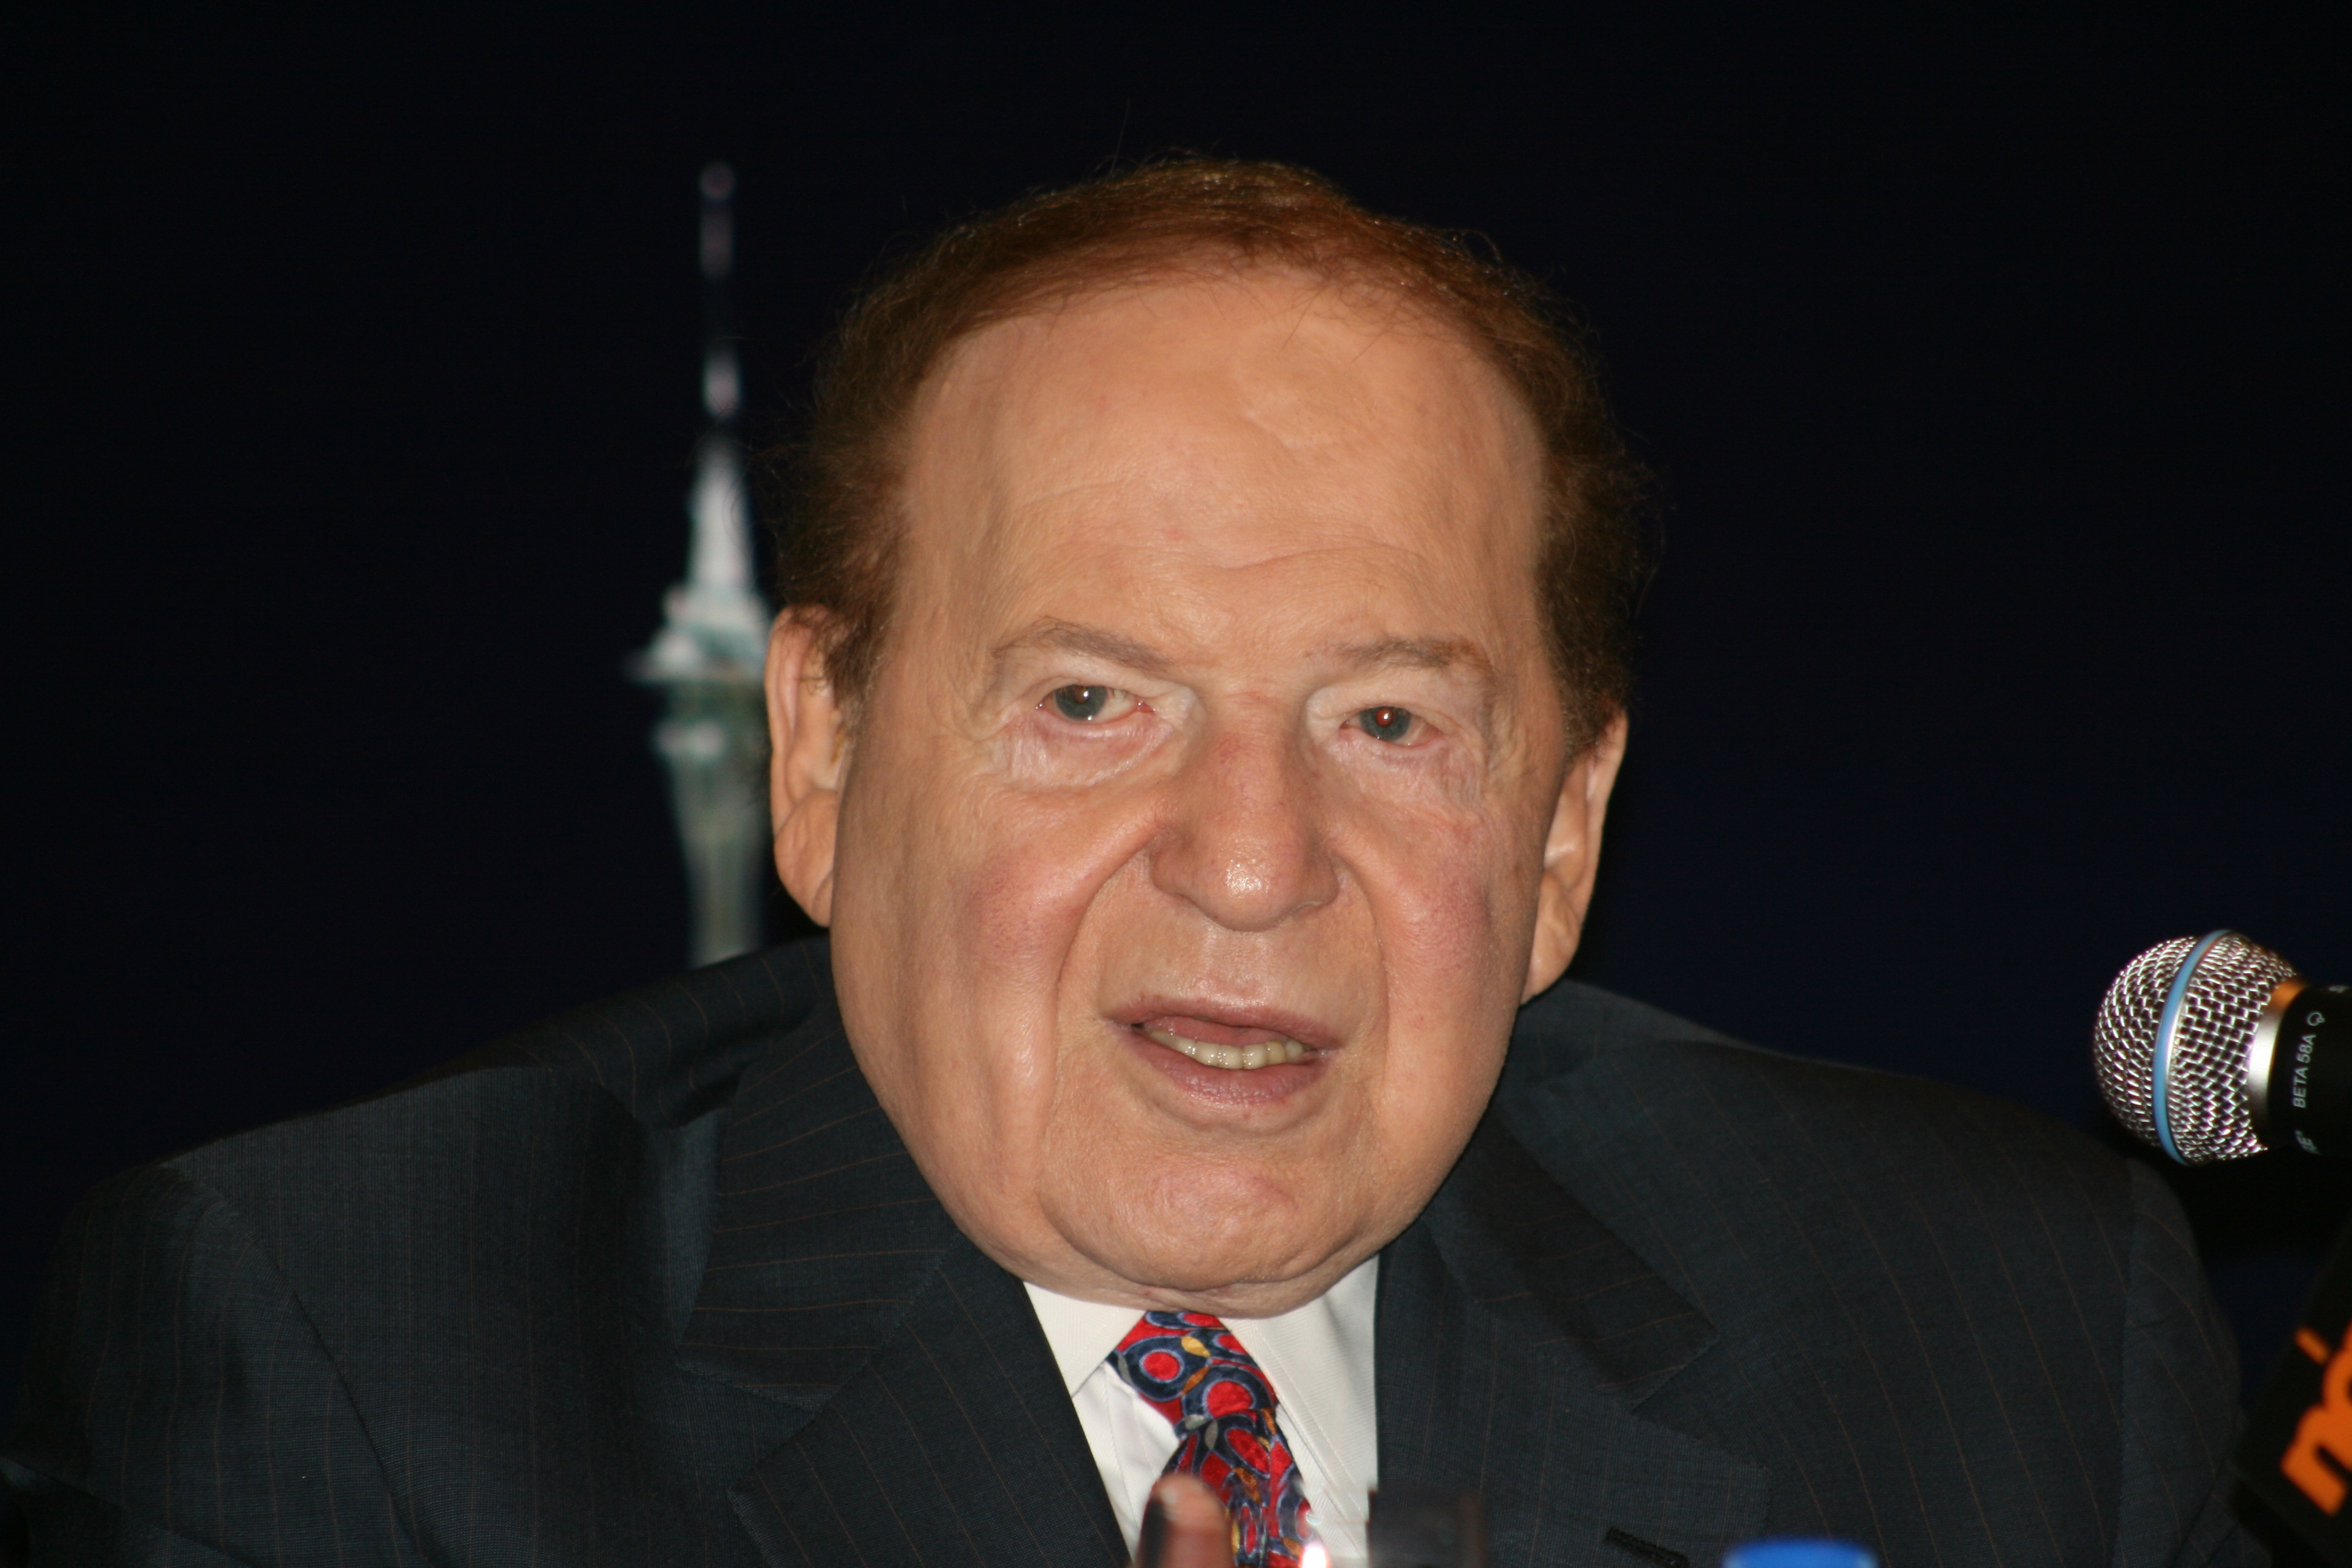 Sheldon Adelson. Photo by Bectrigger [CC BY-SA 3.0 (https://creativecommons.org/licenses/by-sa/3.0)], from Wikimedia Commons